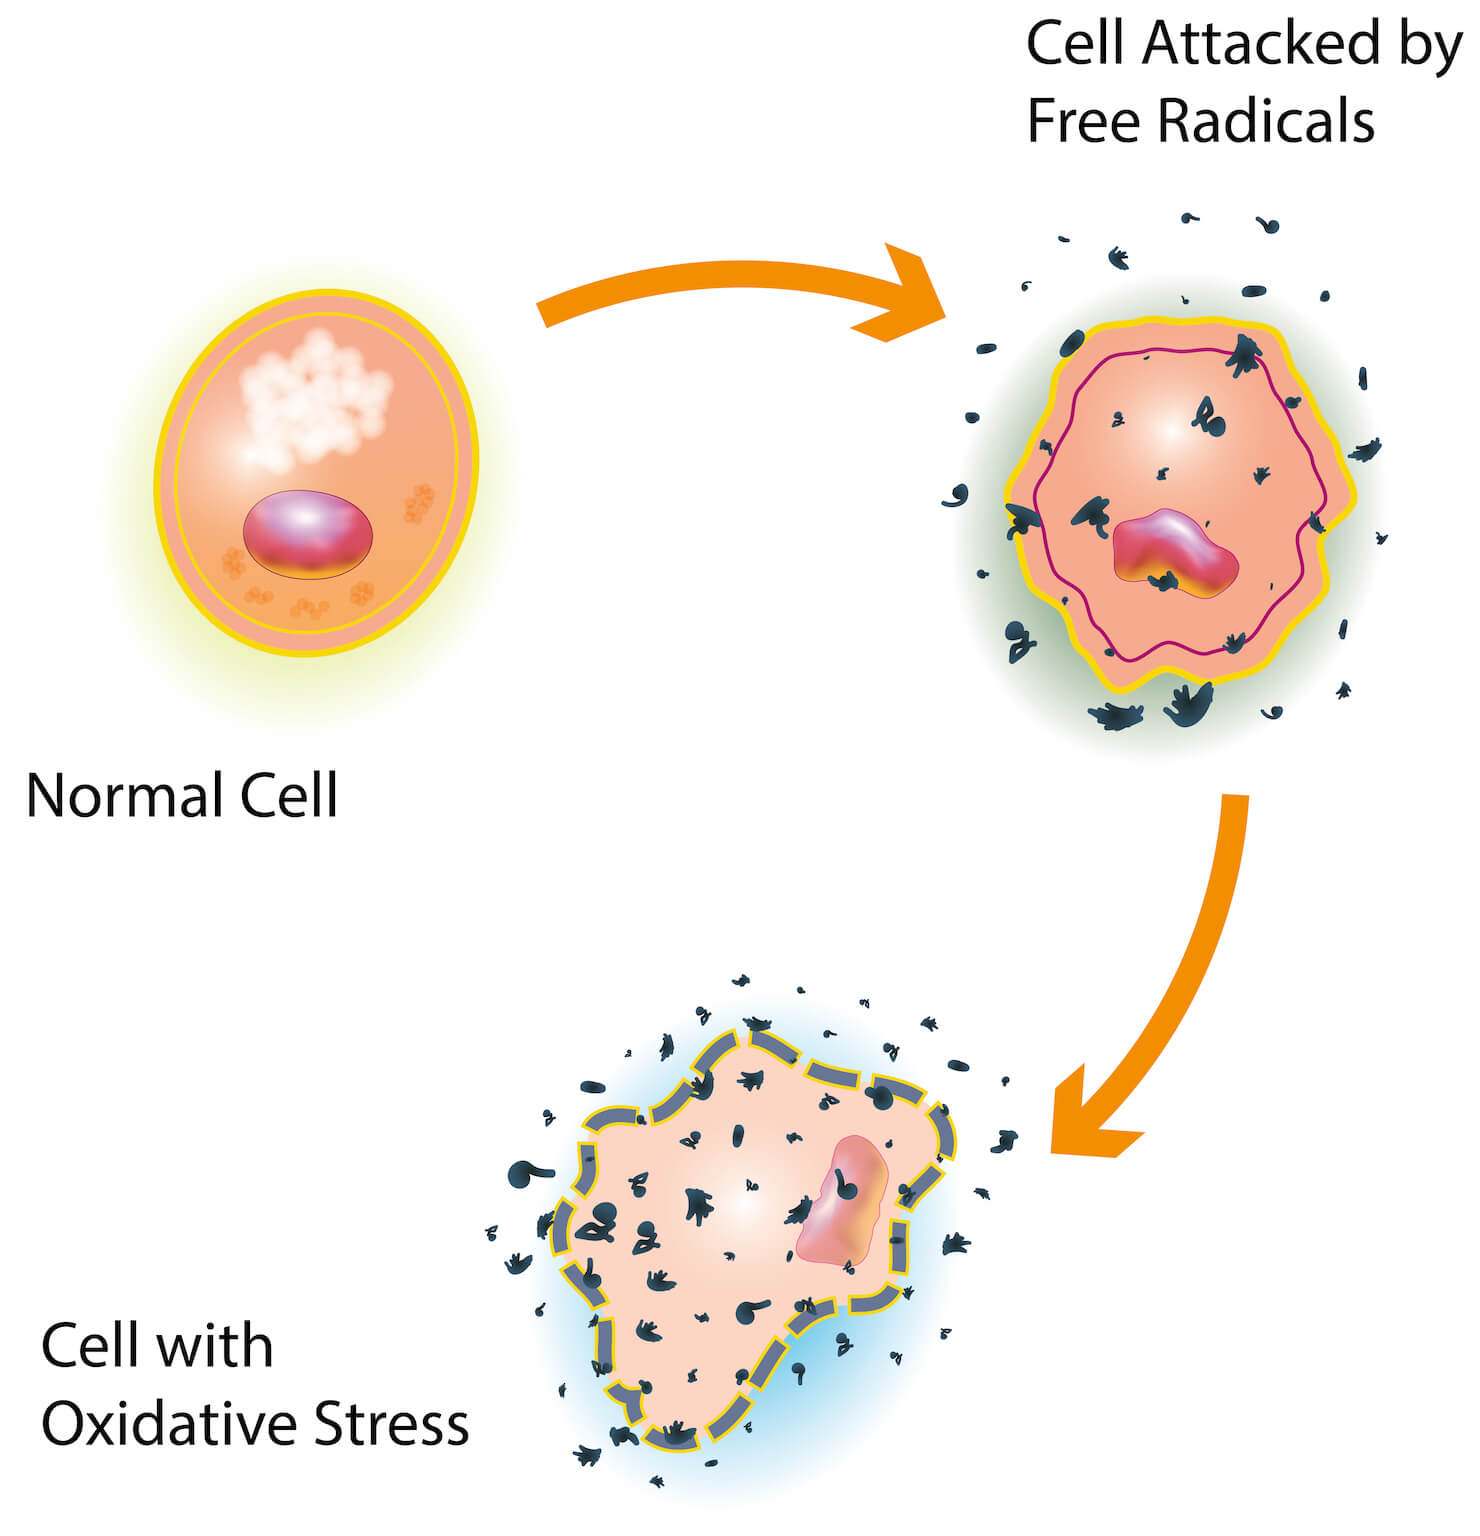 Free radical damage on cells oxidizing - diagram of oxidative stress